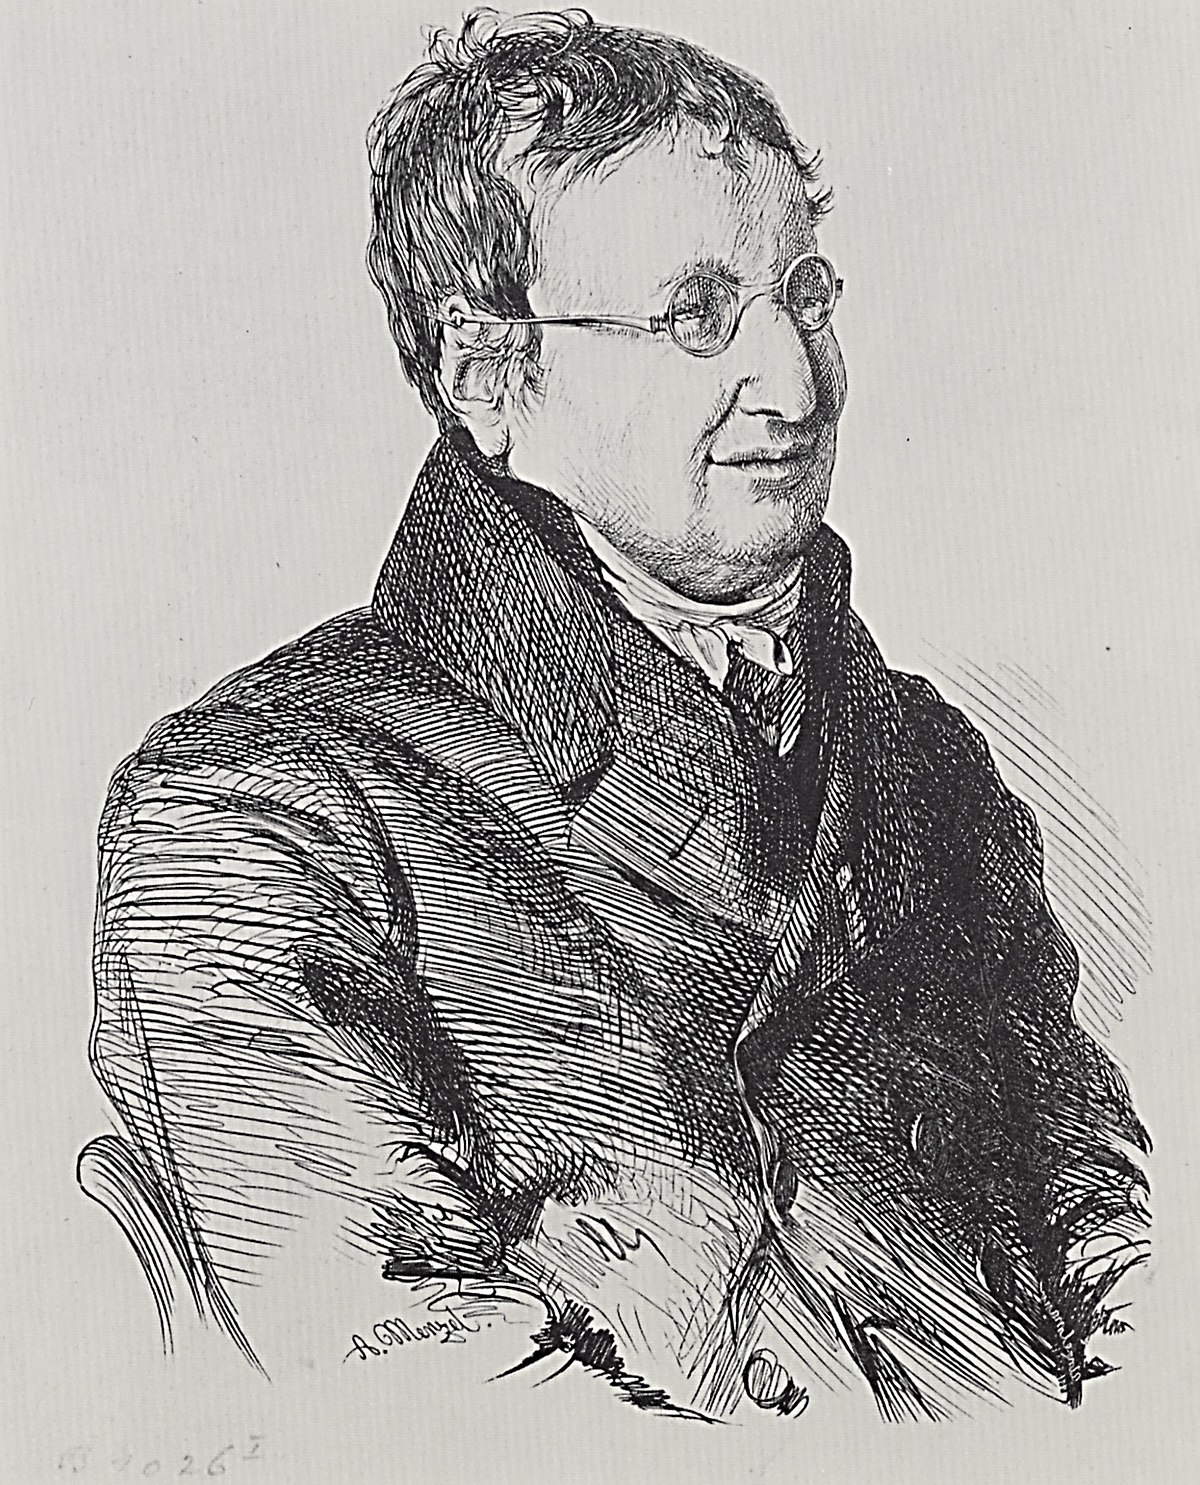 the life and literary works of adelbert von chamisso Get information, facts, and pictures about adelbert von chamisso at  encyclopediacom make research  his early years were spent at the château  de boncourt  during this period he had great success as a poet and popular  writer in 1832.